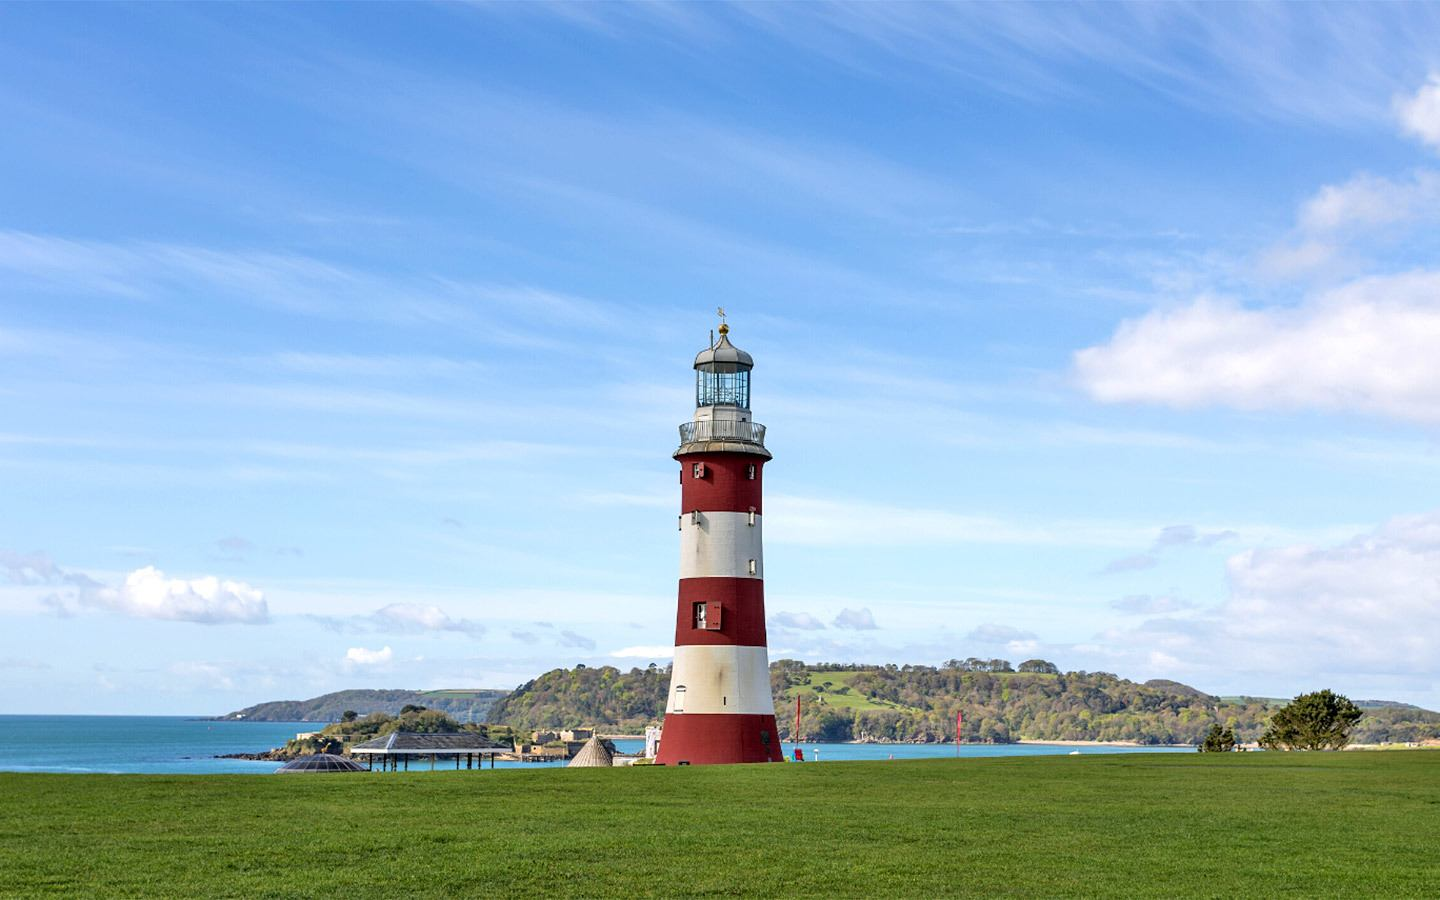 Smeaton's Tower lighthouse in Plymouth